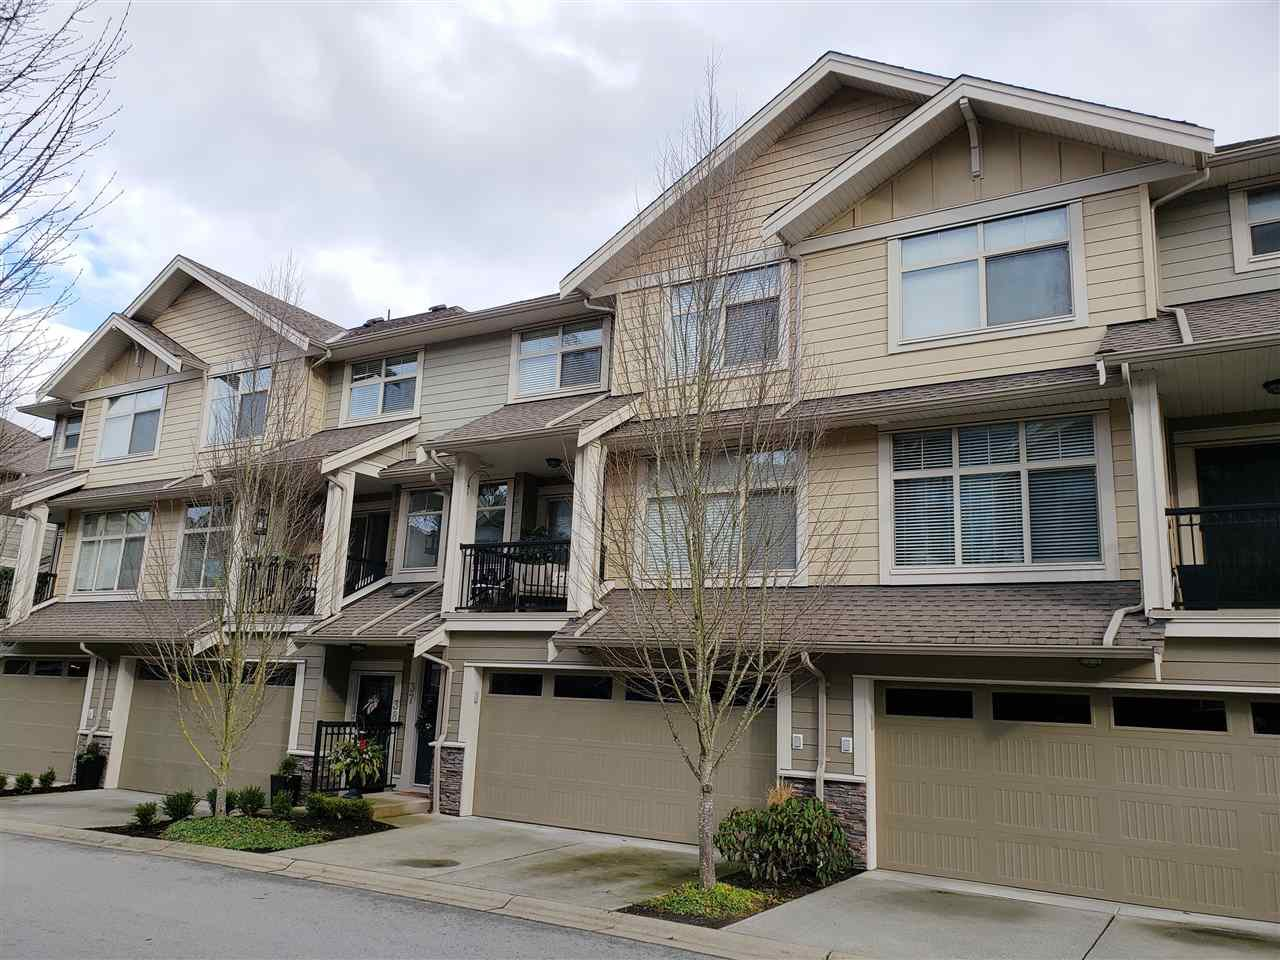 "Main Photo: 37 22225 50 Avenue in Langley: Murrayville Townhouse for sale in ""Murray's Landing"" : MLS®# R2435449"